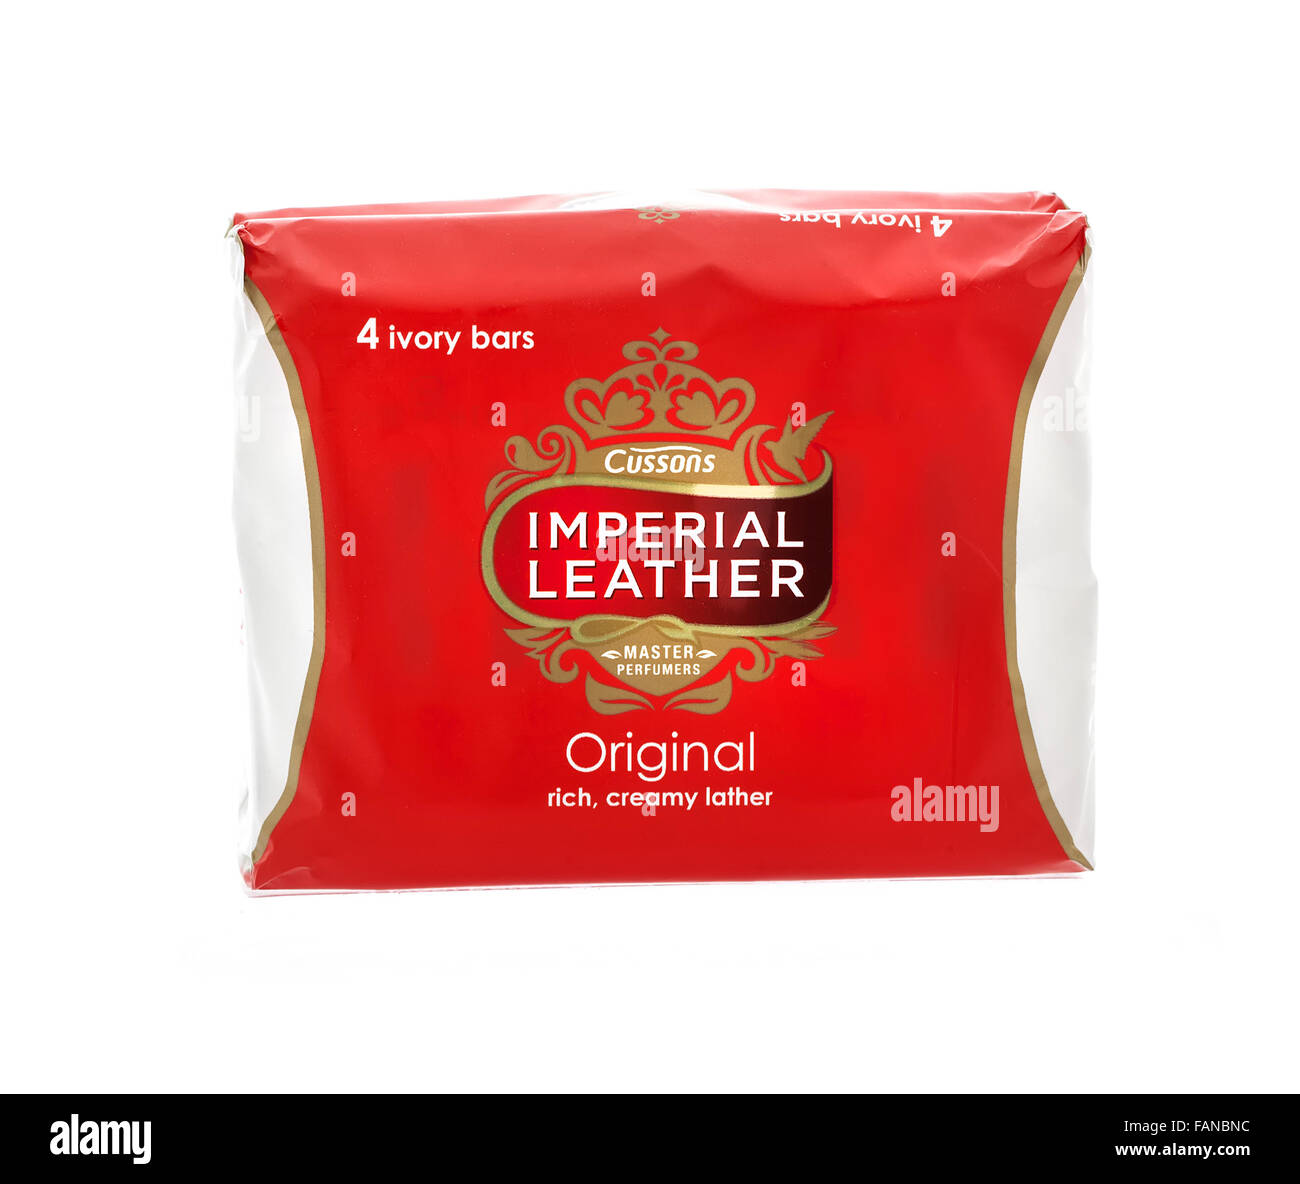 Cussons Imperial Leather Soap on a white background - Stock Image